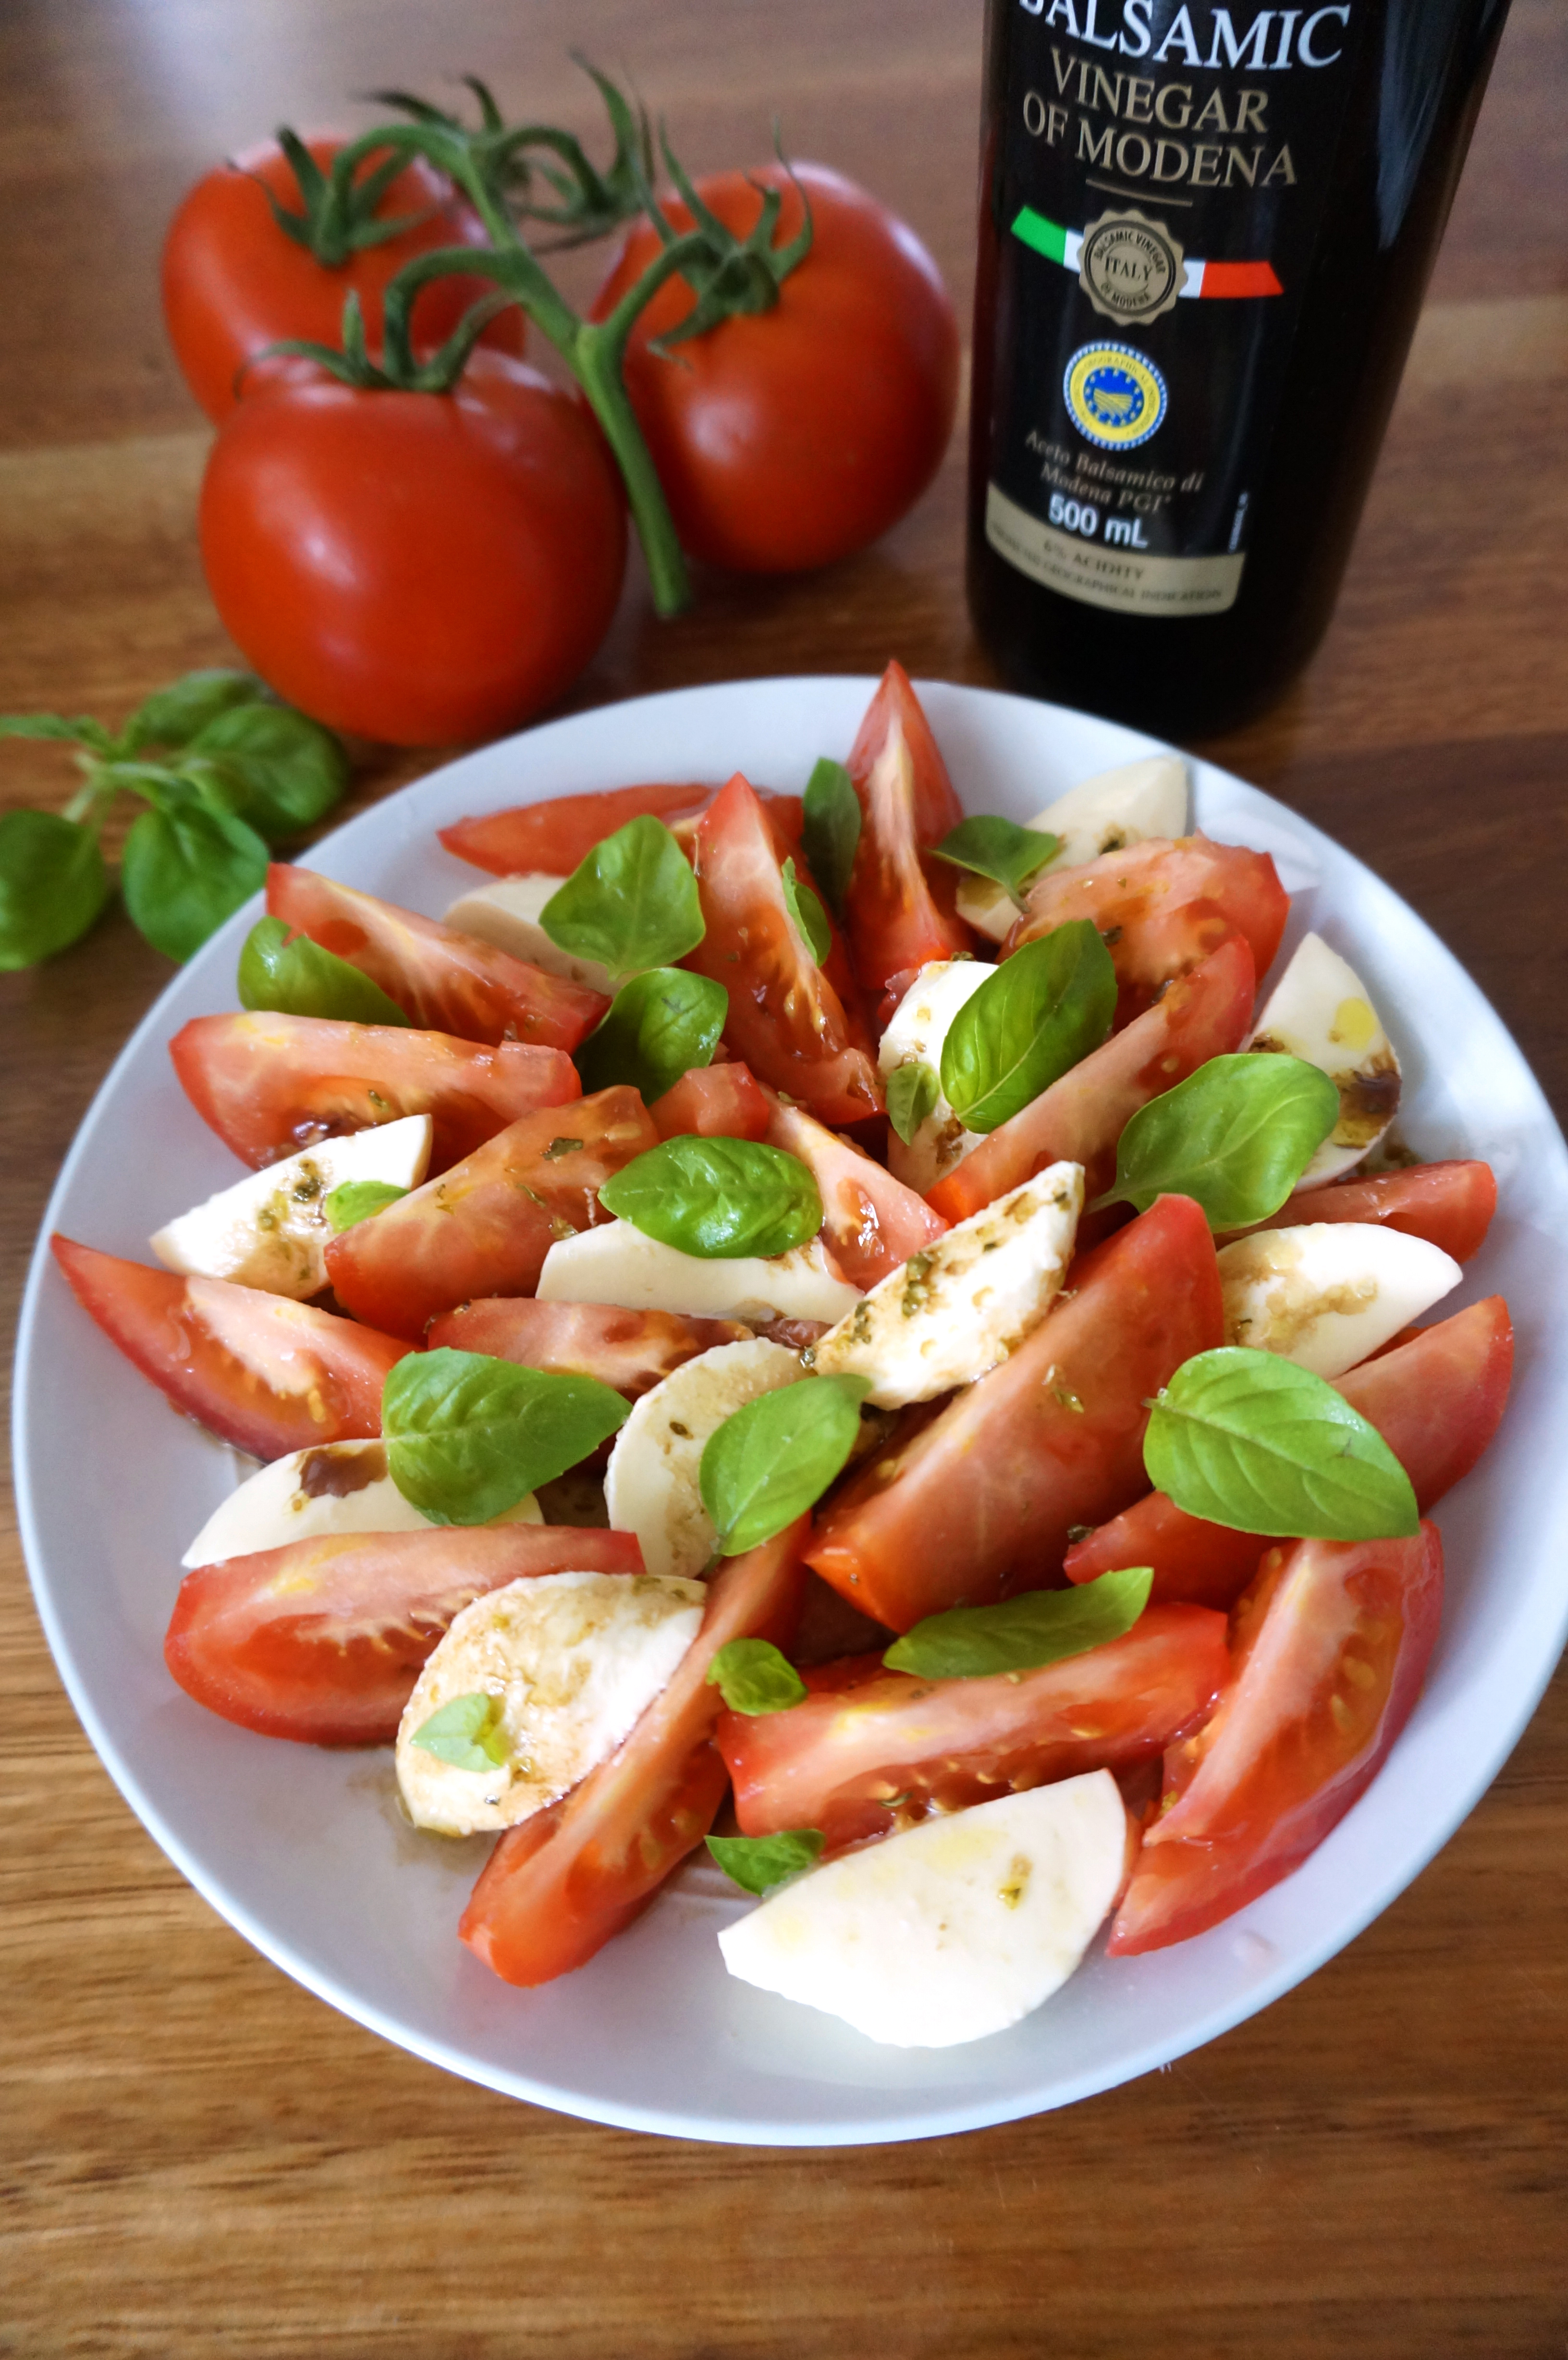 Tomatoes, basil leaves and balsamic vinegar behind a plate of bocconcini salad